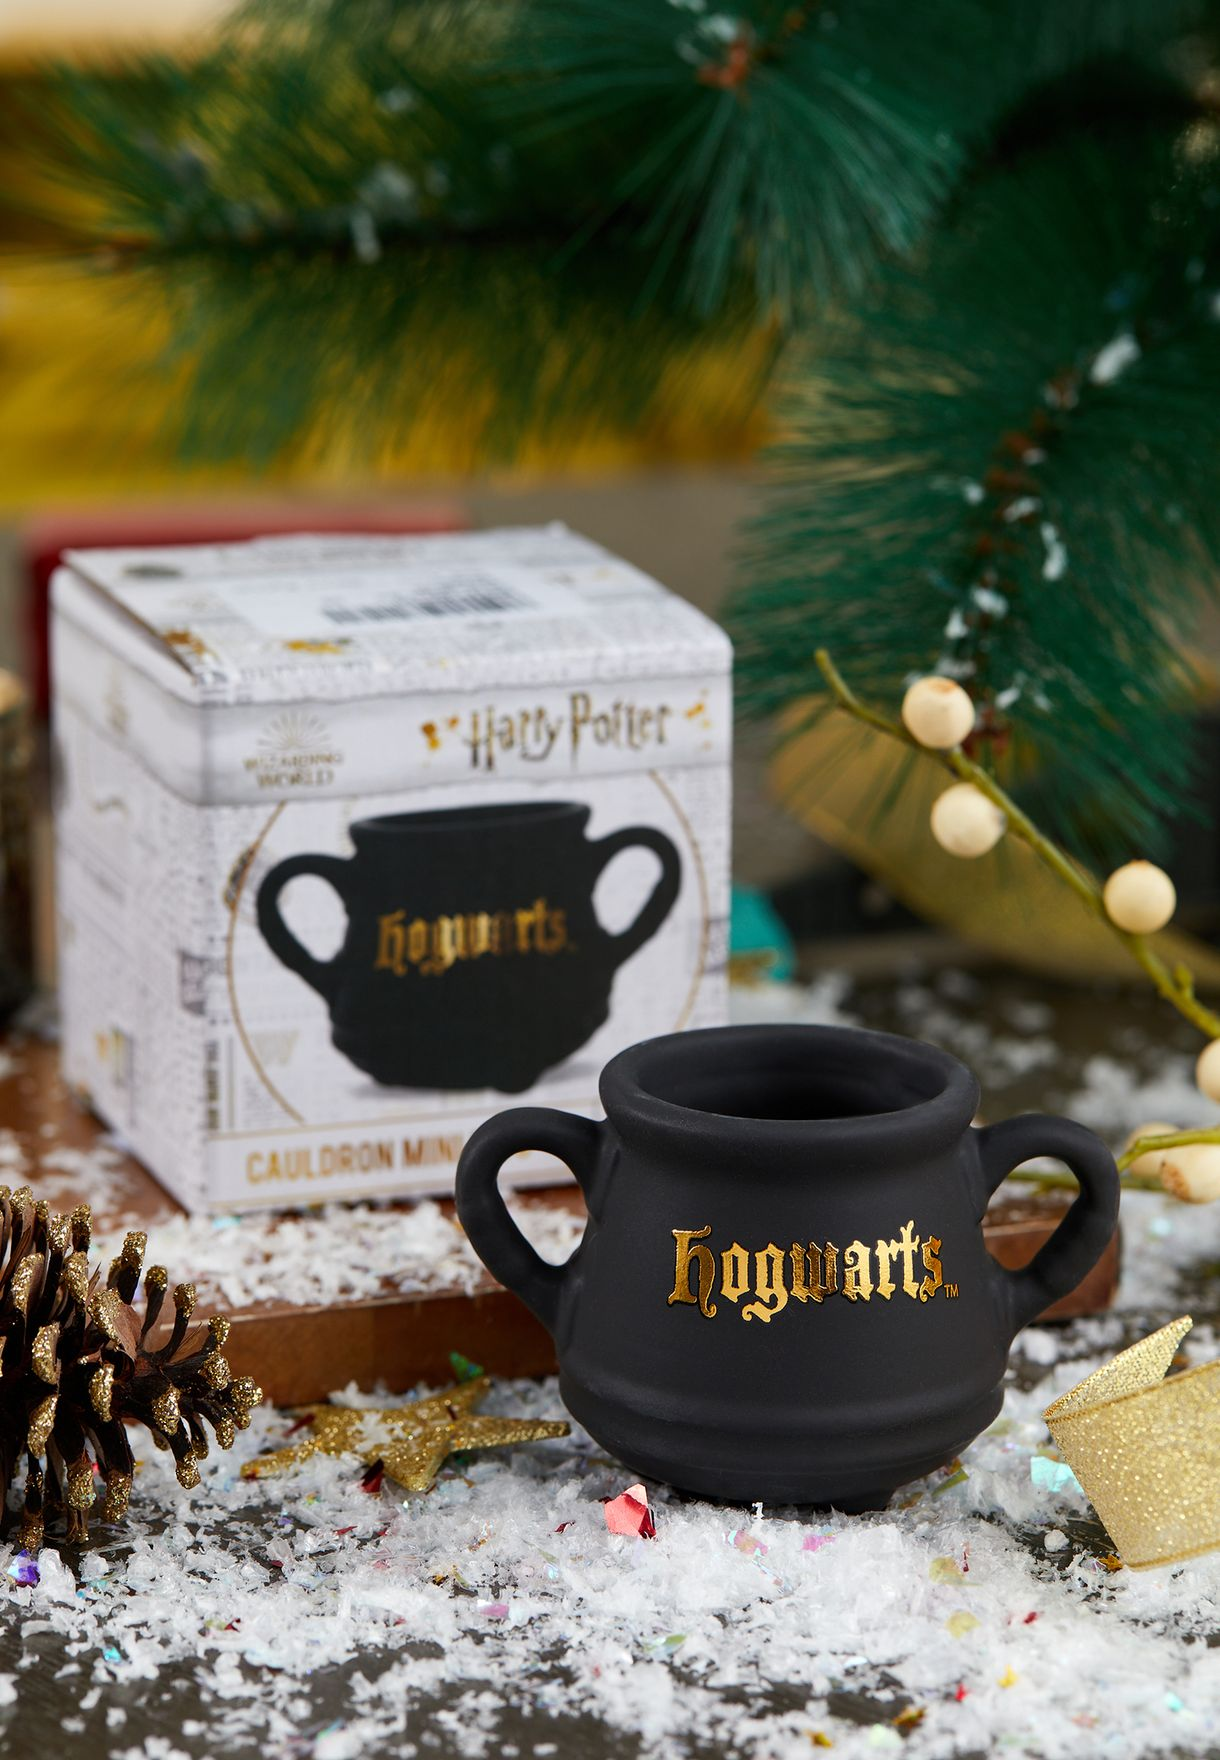 Harry Potter Hogwarts Cauldron Mini Mug